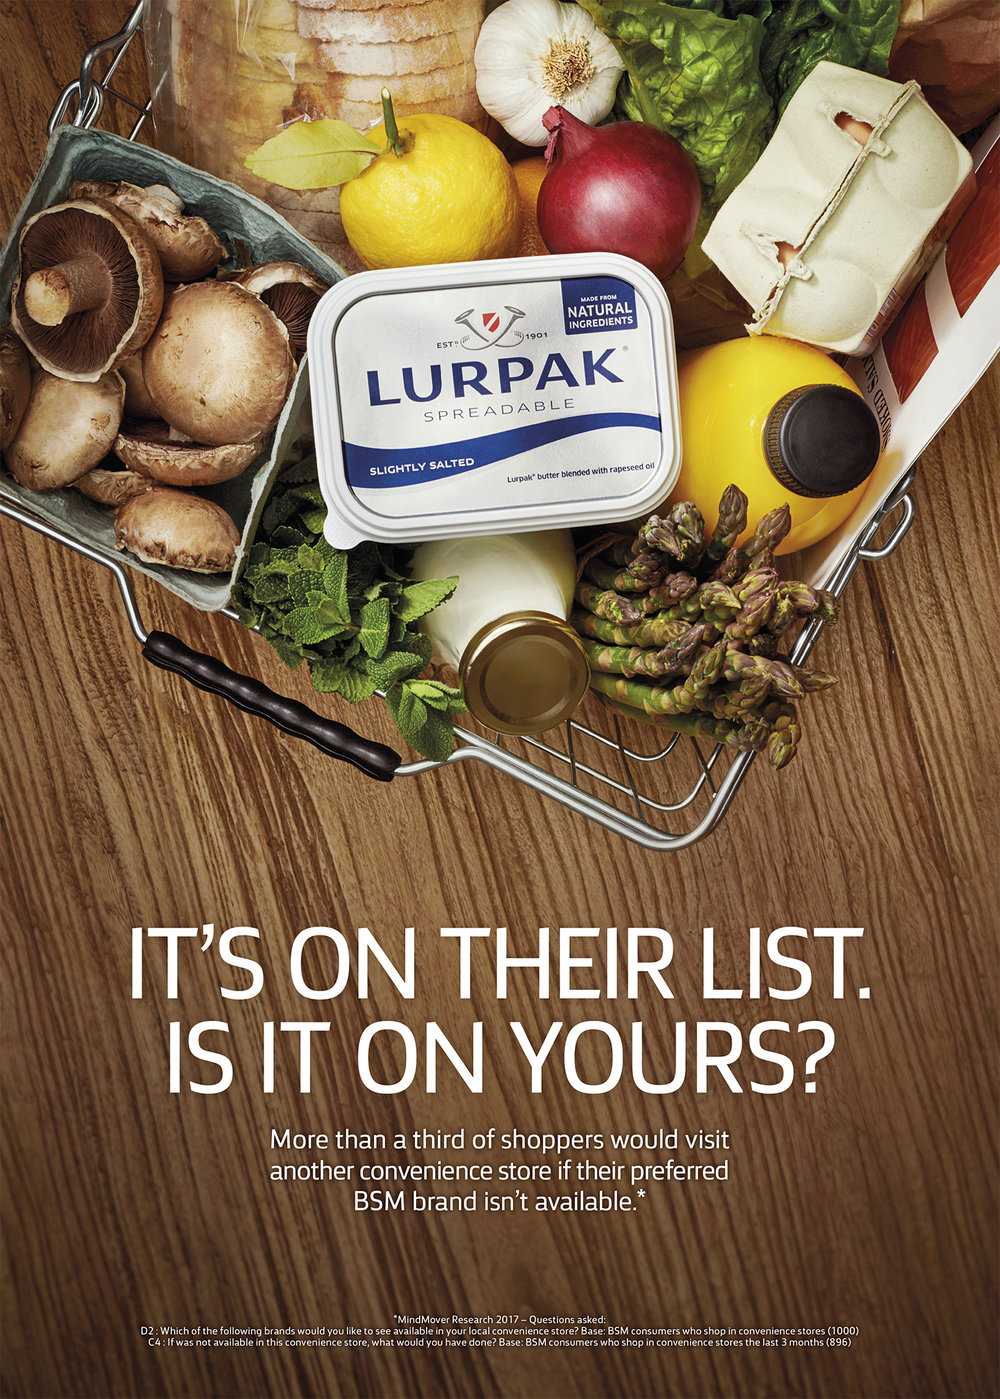 Lurpak trade food photography advertising campaign